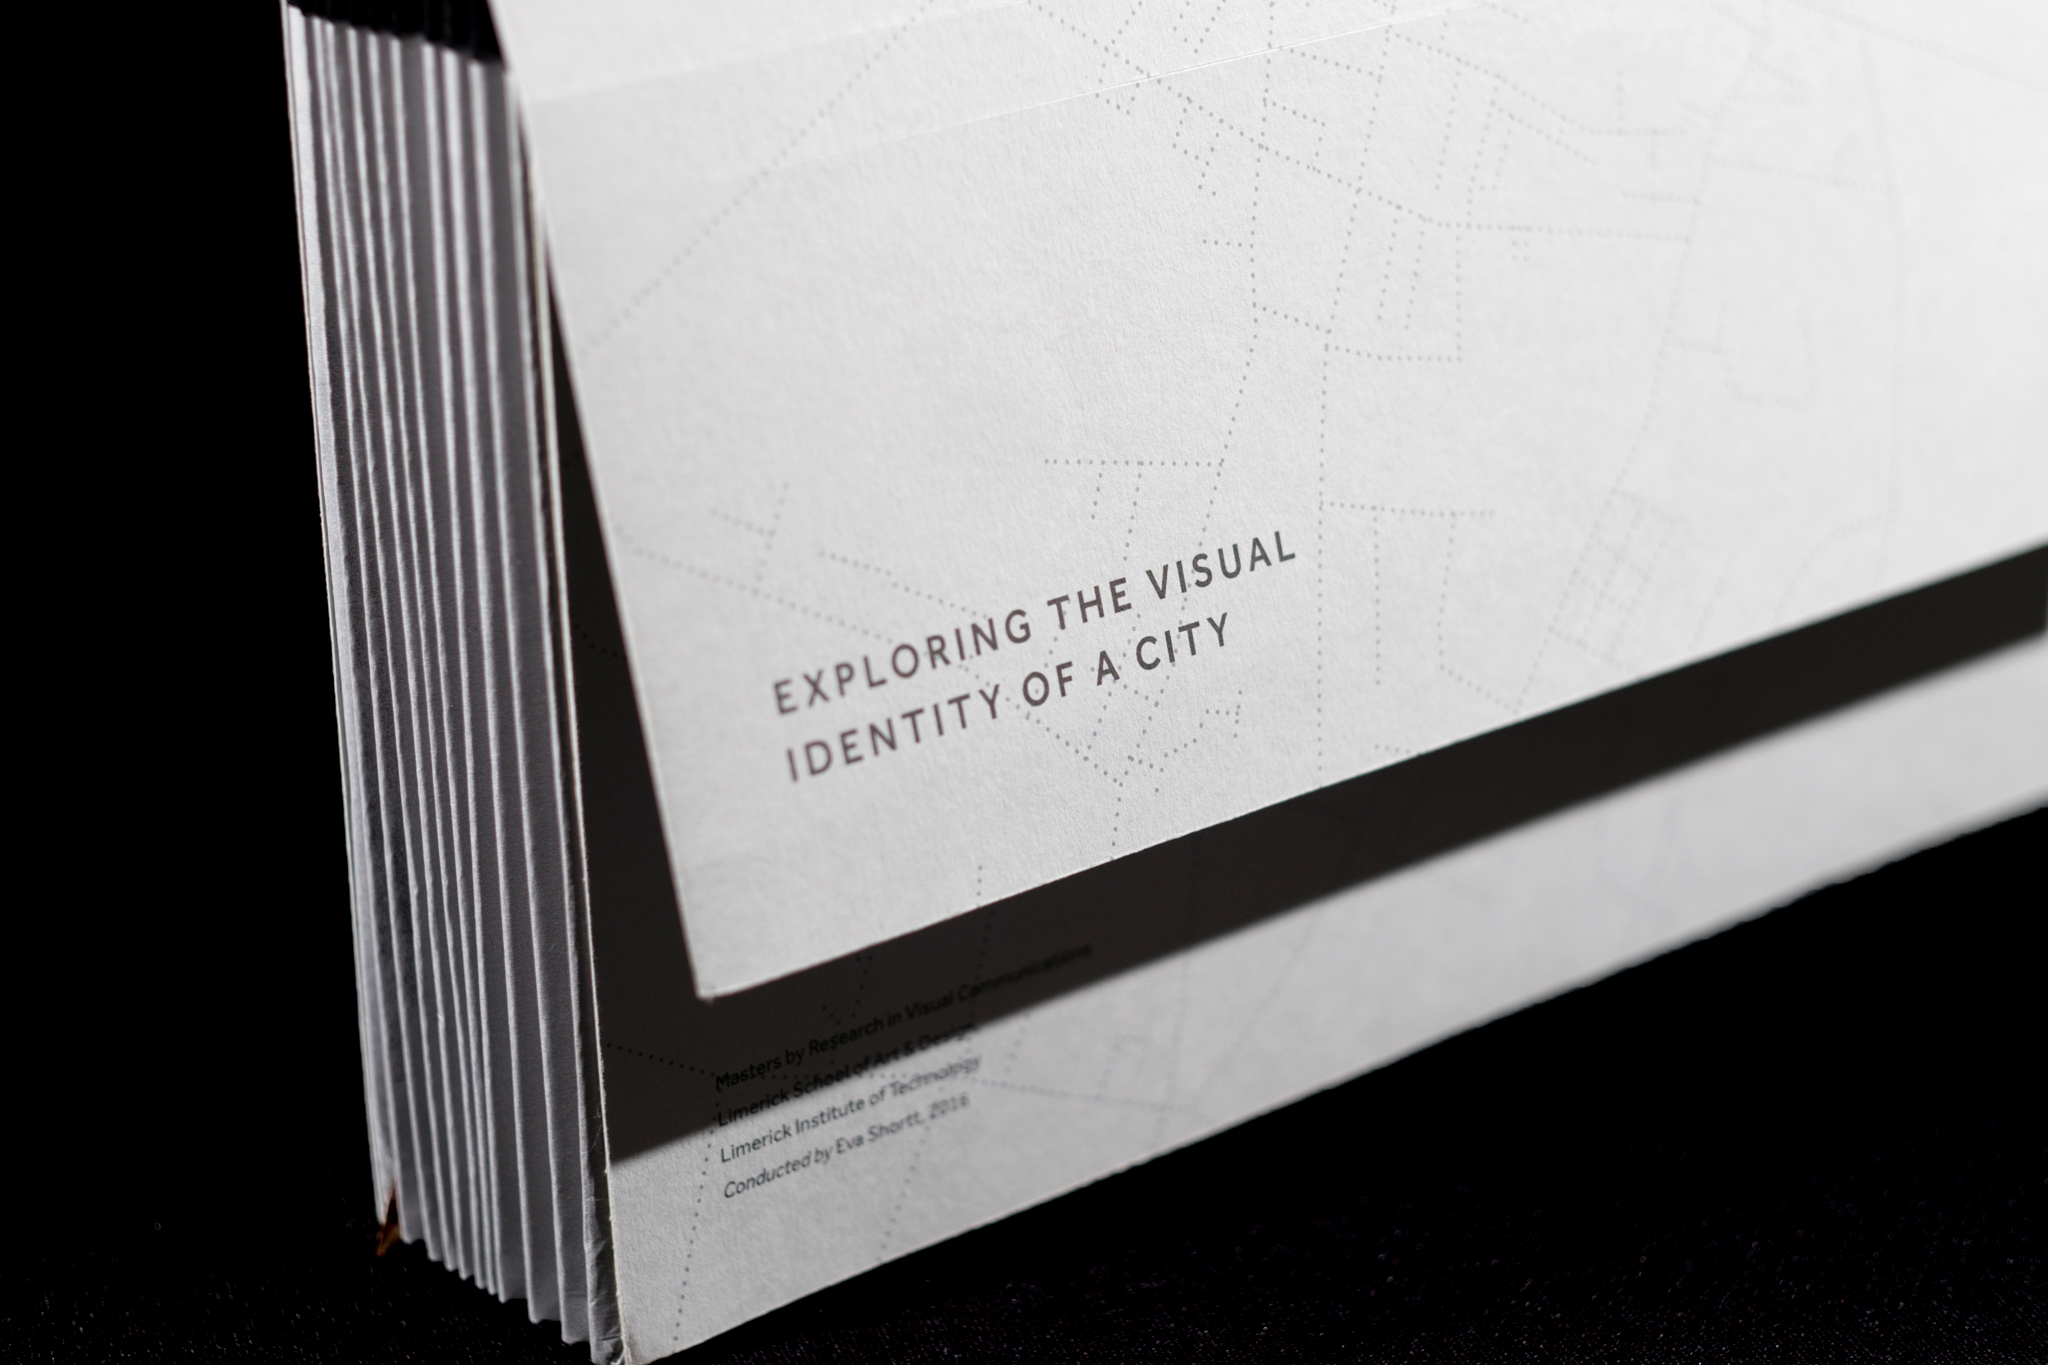 Cover image: Exploring The Visual Identity of Cities